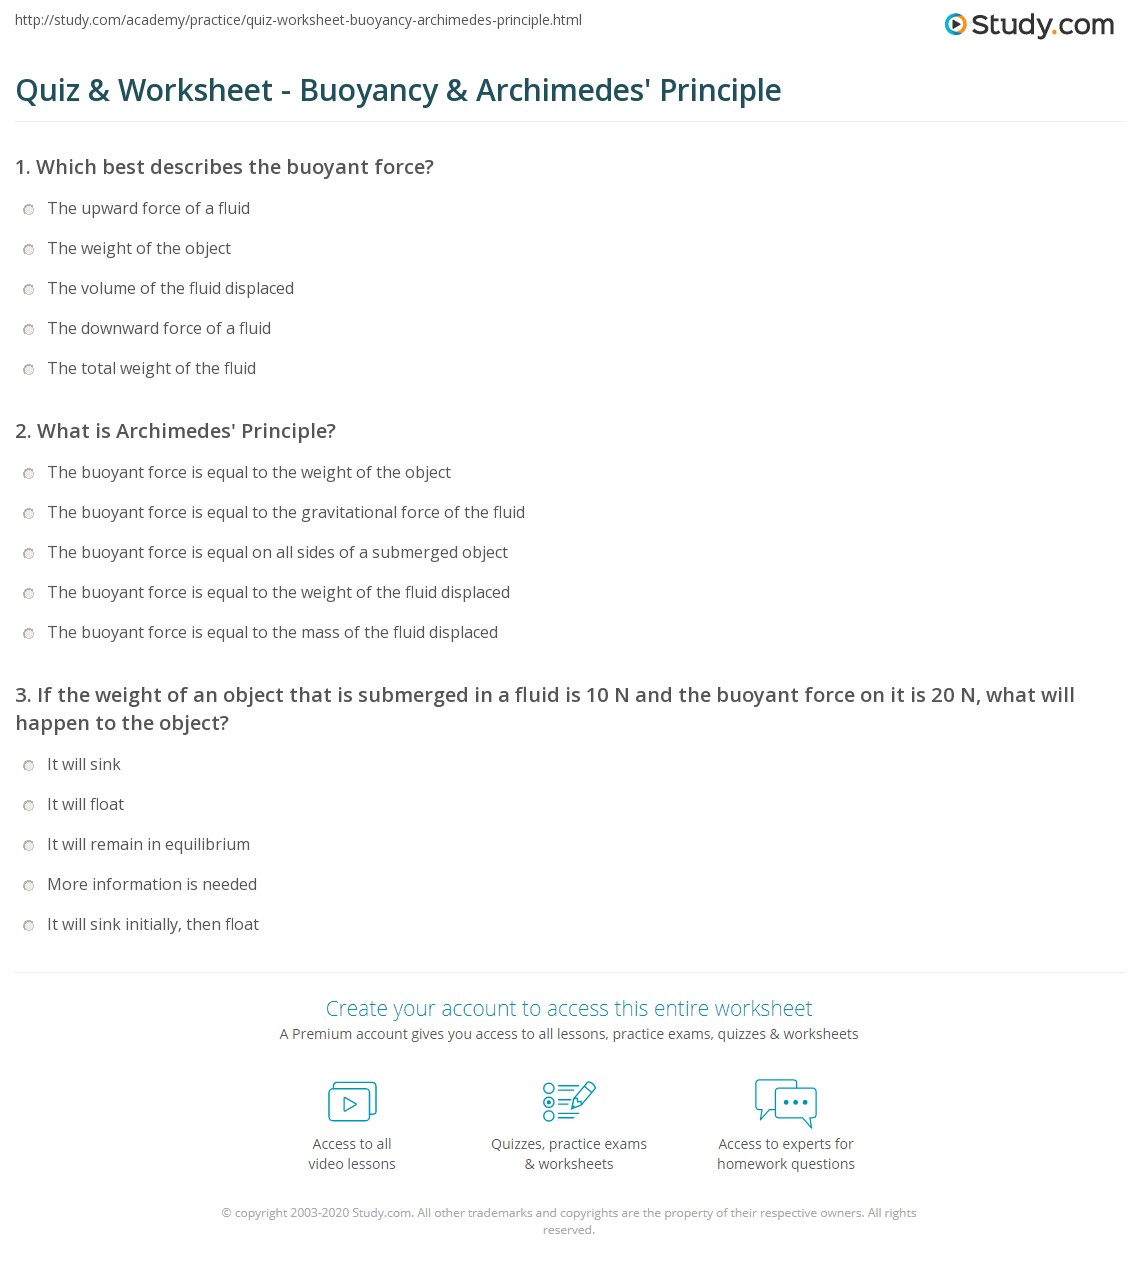 quiz worksheet buoyancy archimedes principle com print buoyancy calculating force and density archimedes principle worksheet